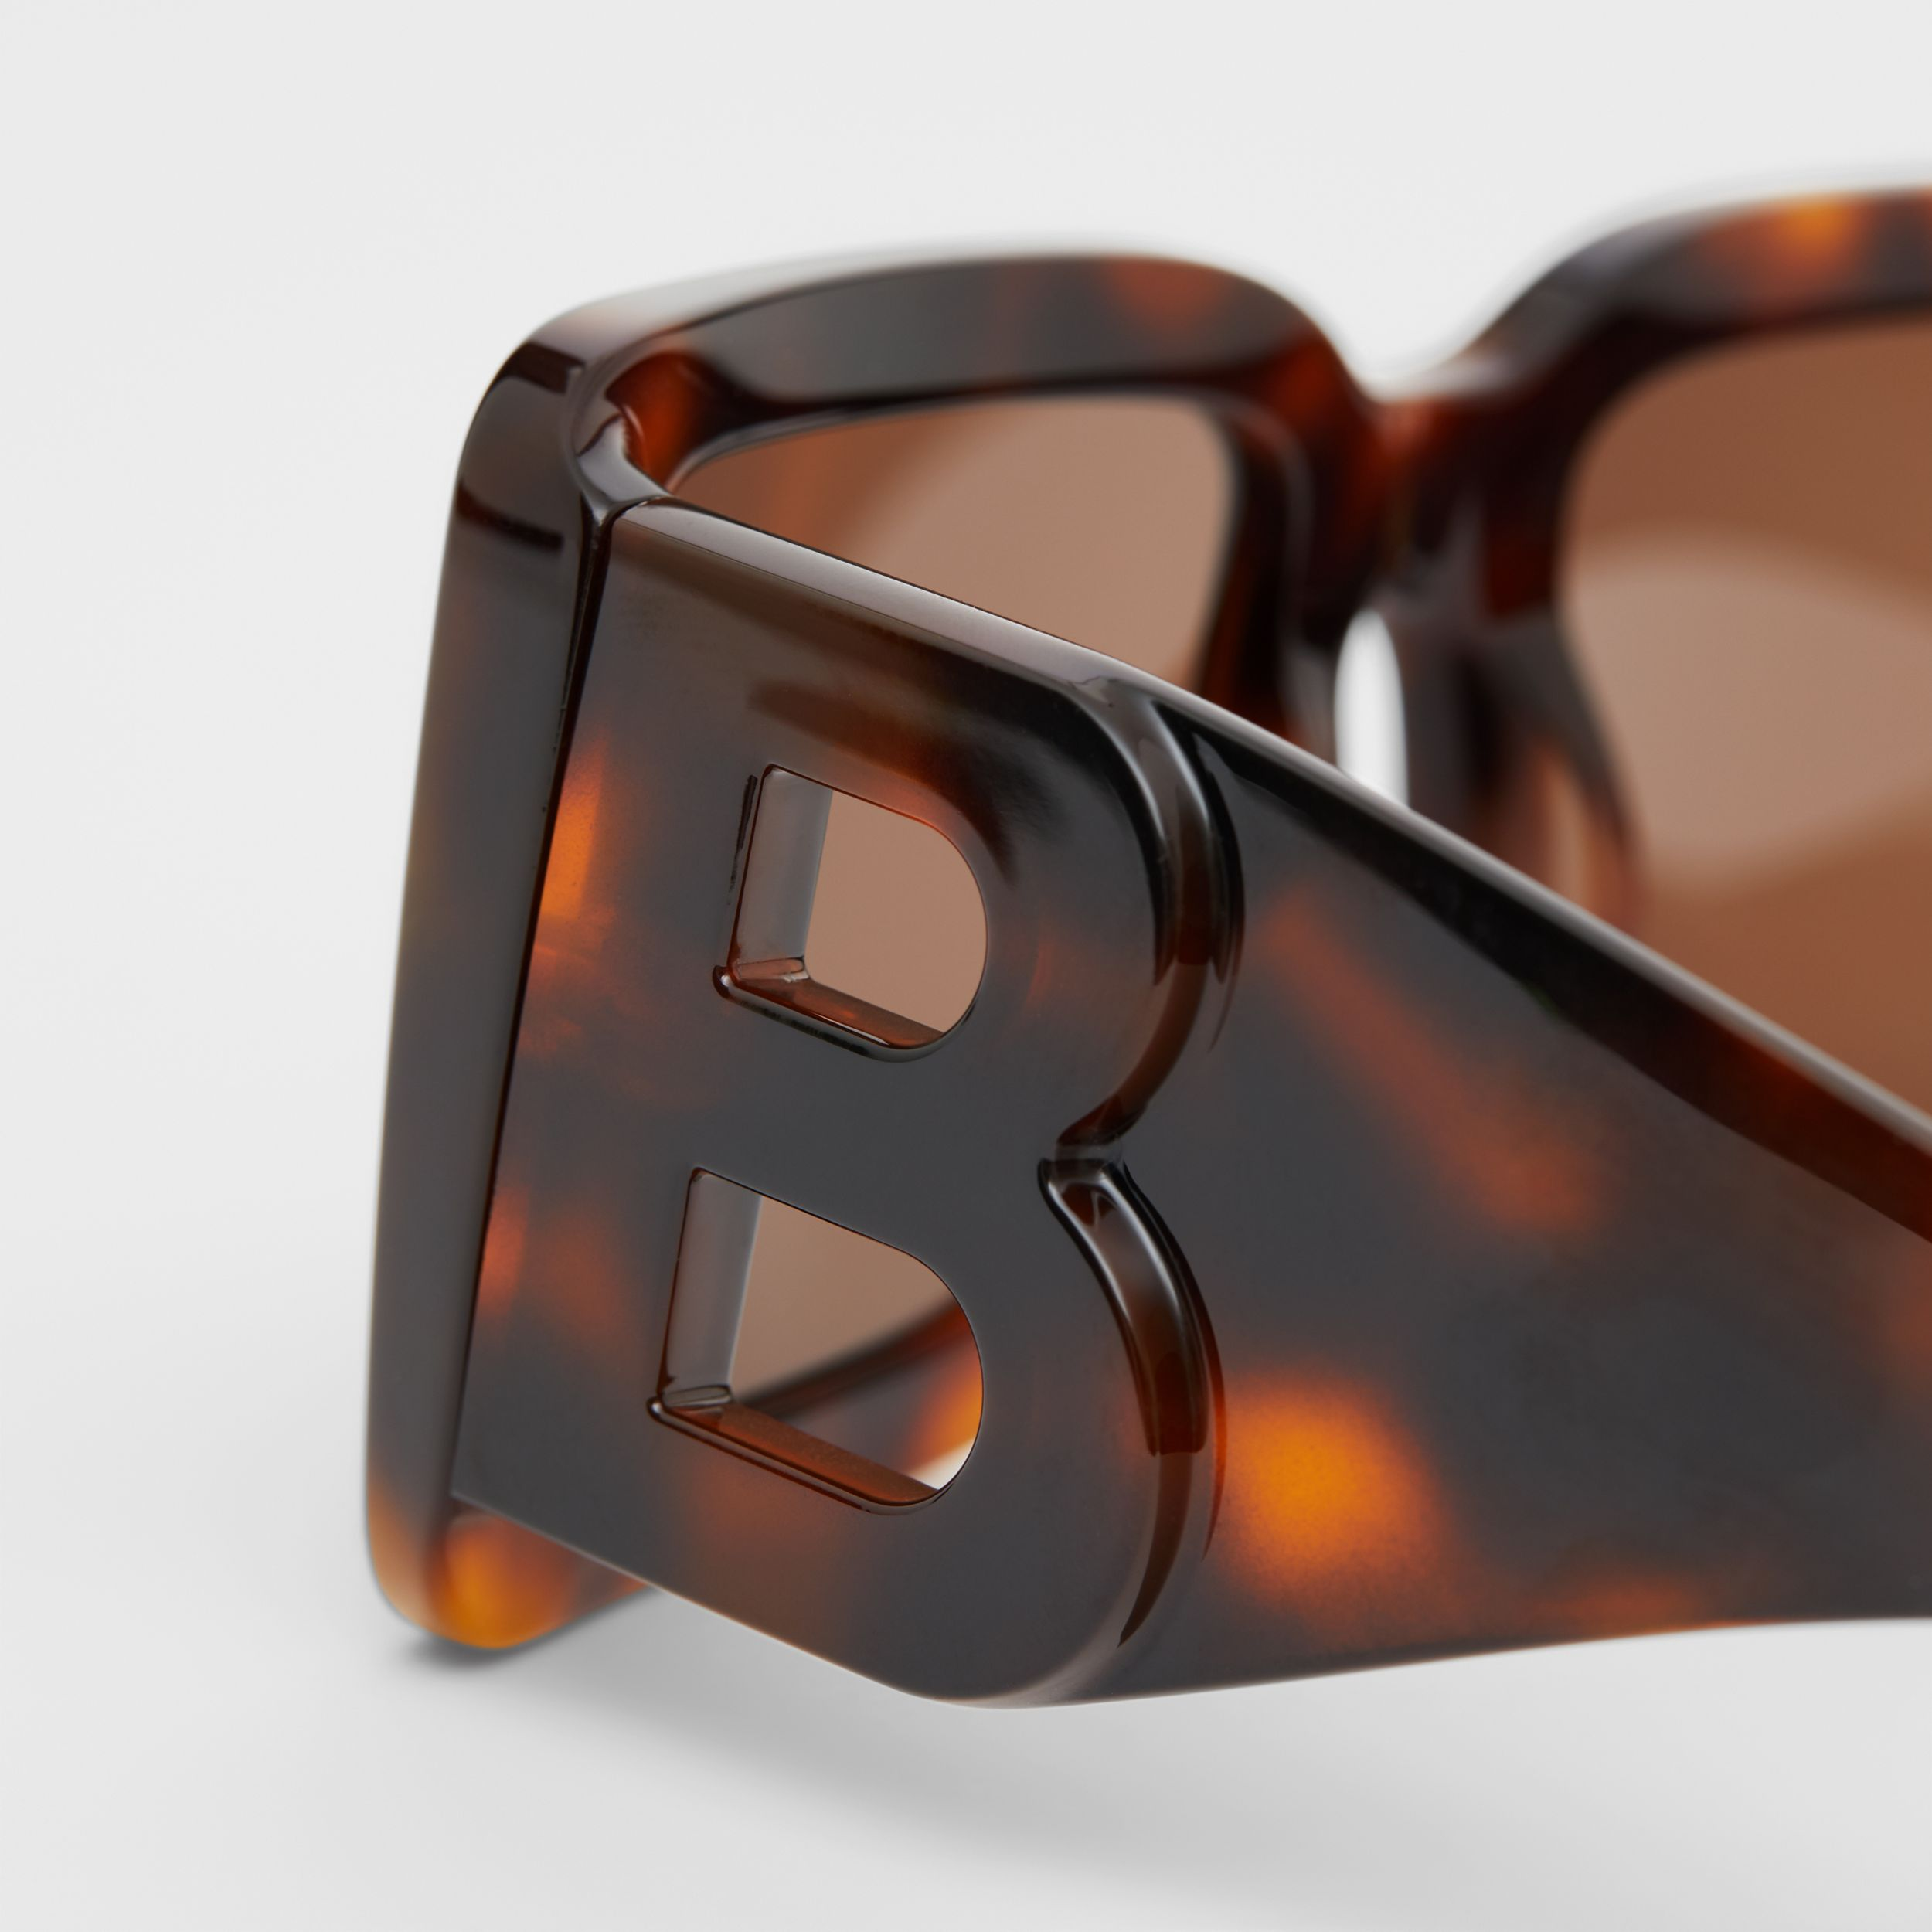 B Motif Square Frame Sunglasses in Tortoise Amber - Women | Burberry - 2